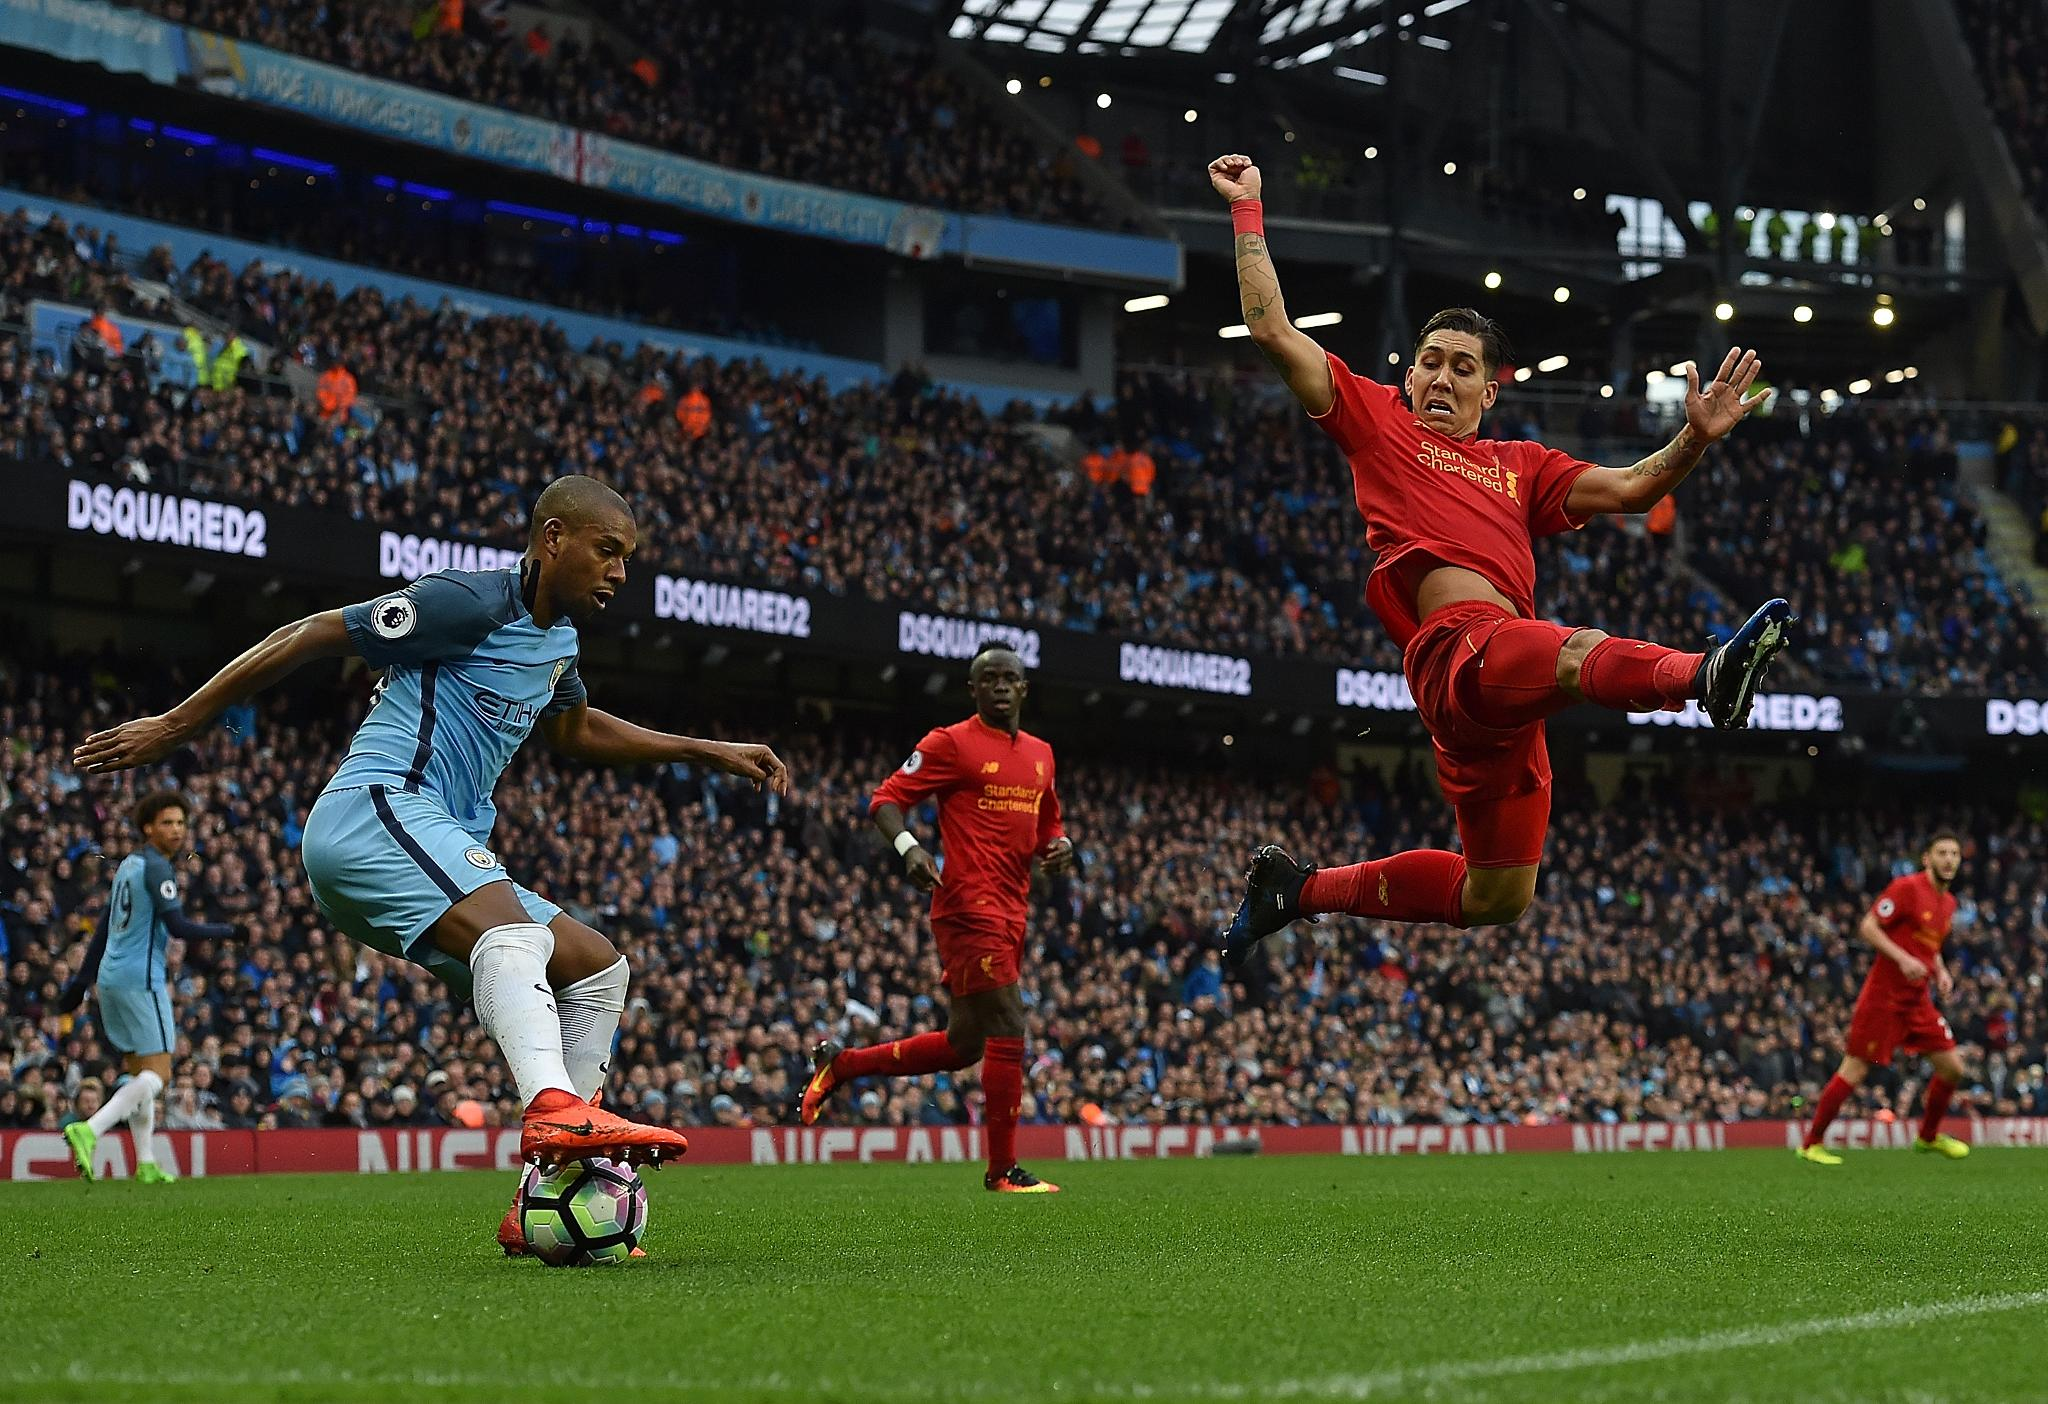 Iheanacho Benched As Man City, Liverpool Draw